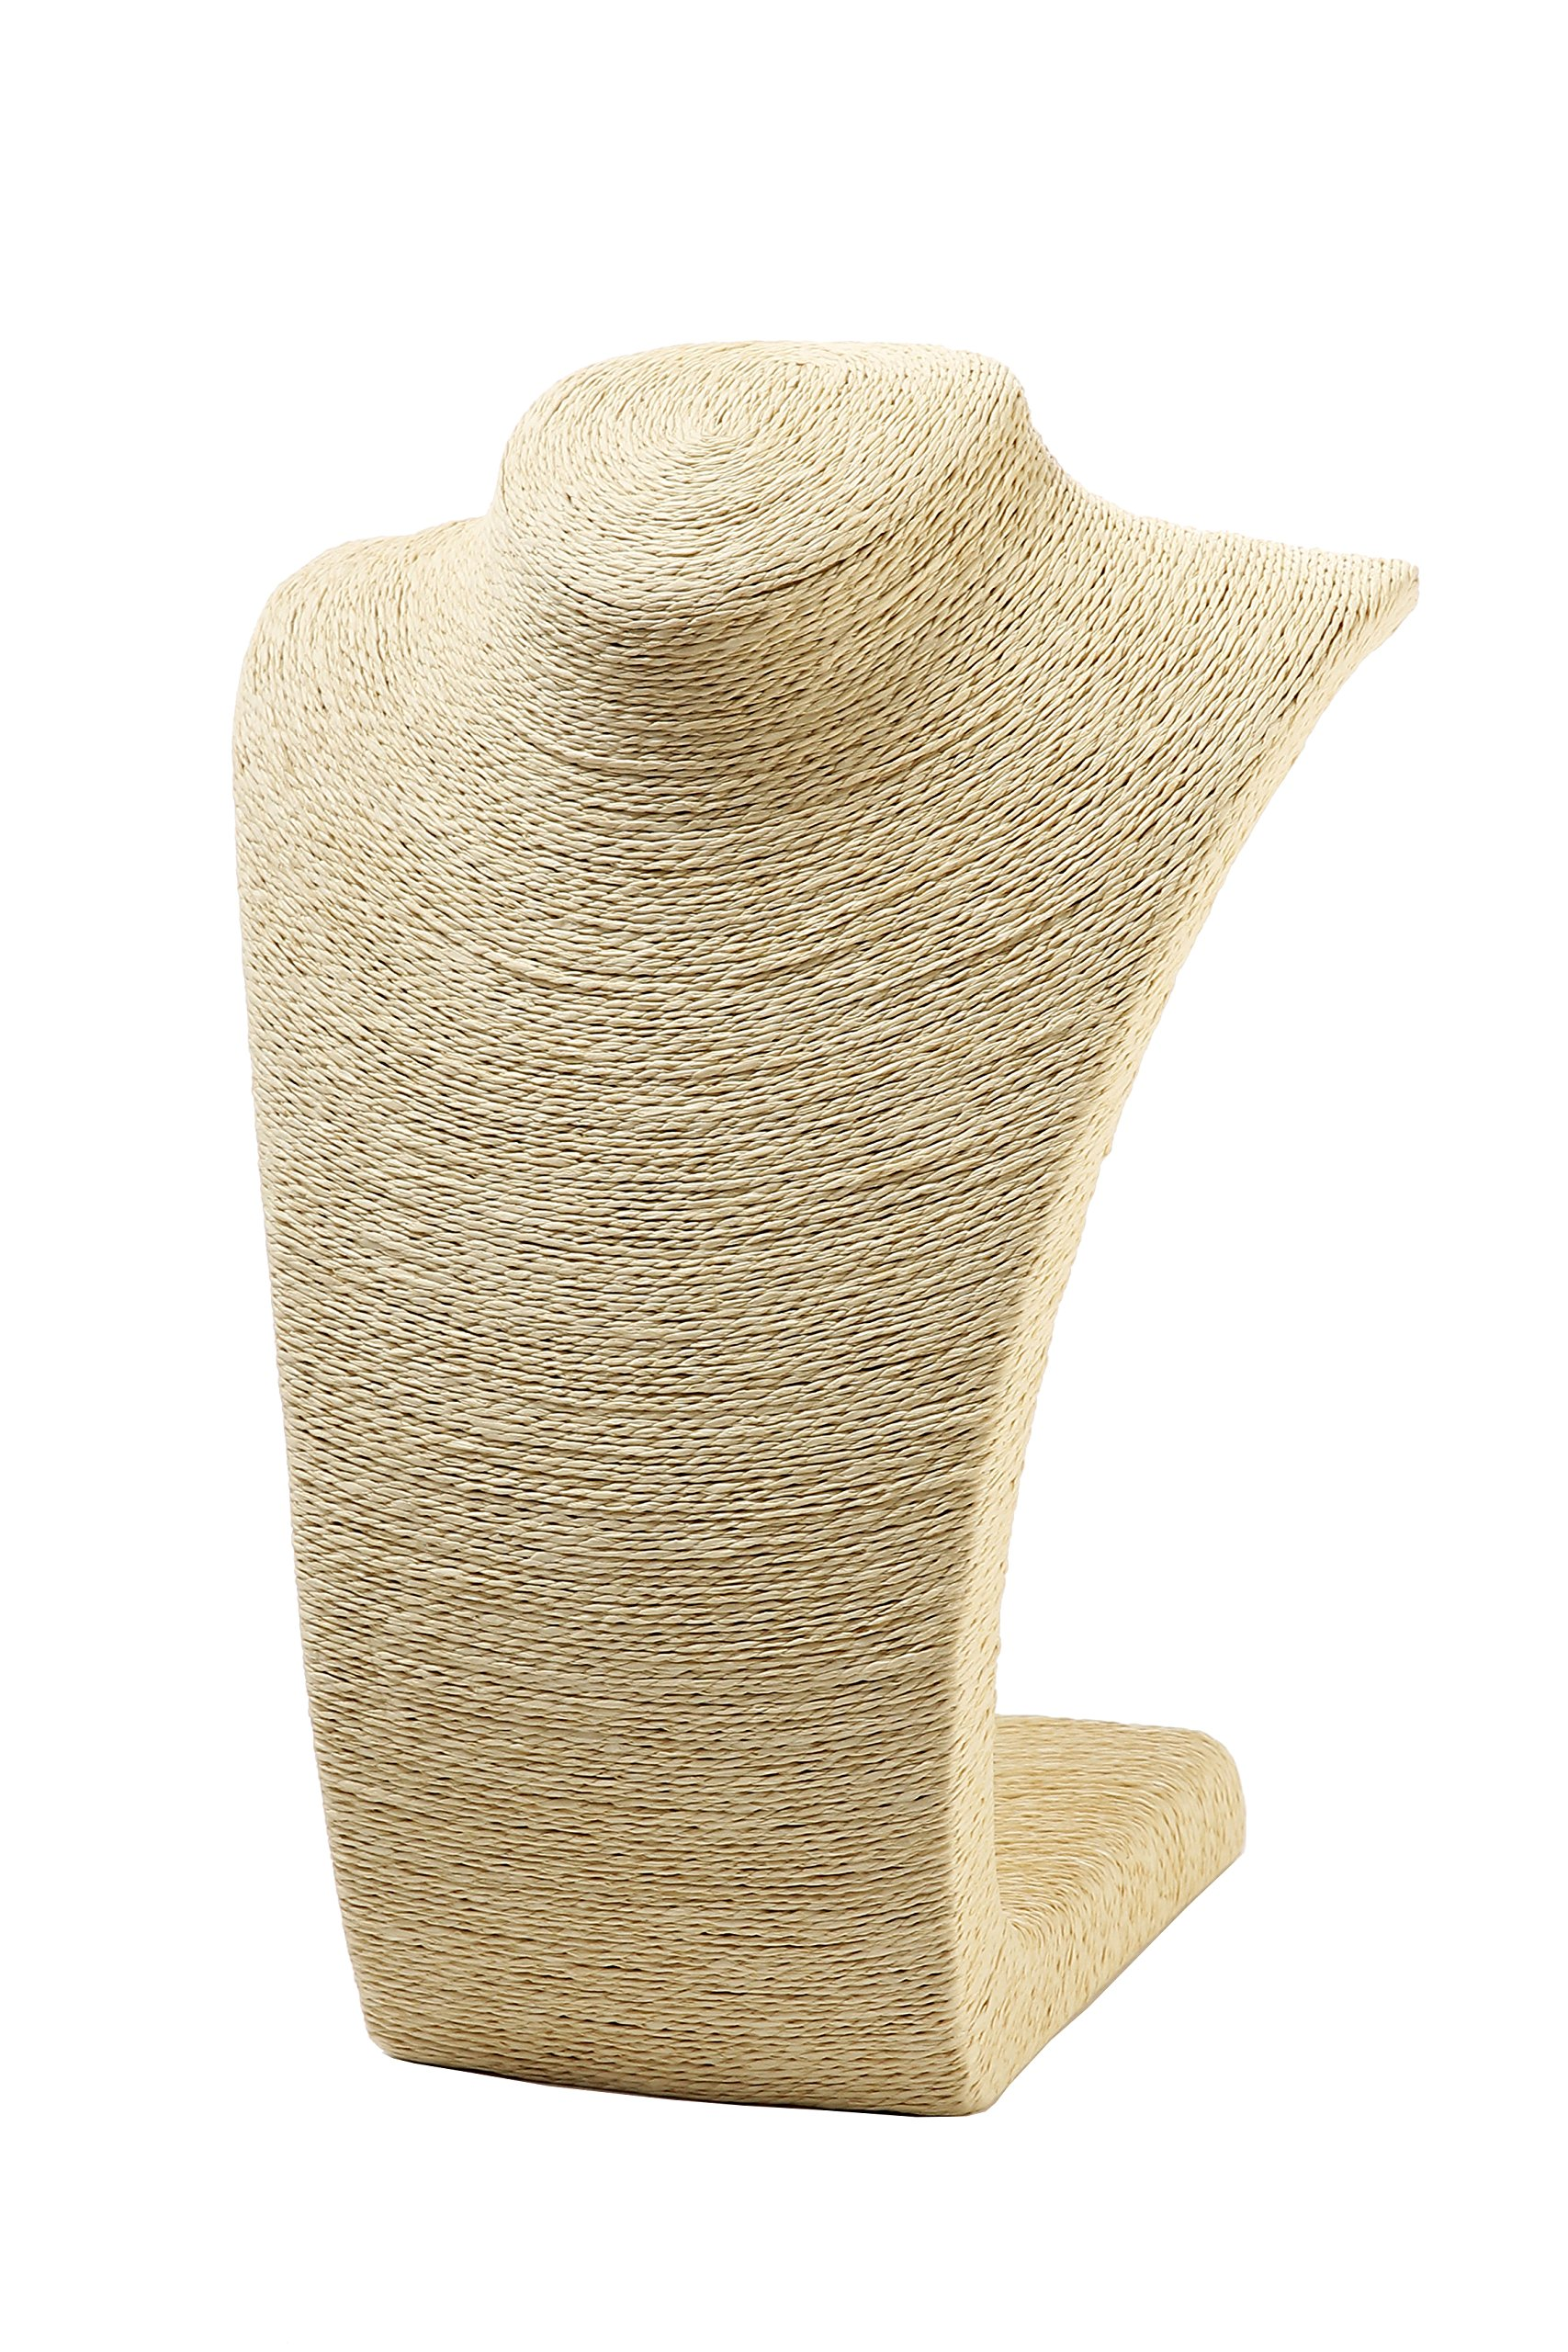 Juvale Beige Burlap Necklace Stand Display Bust For